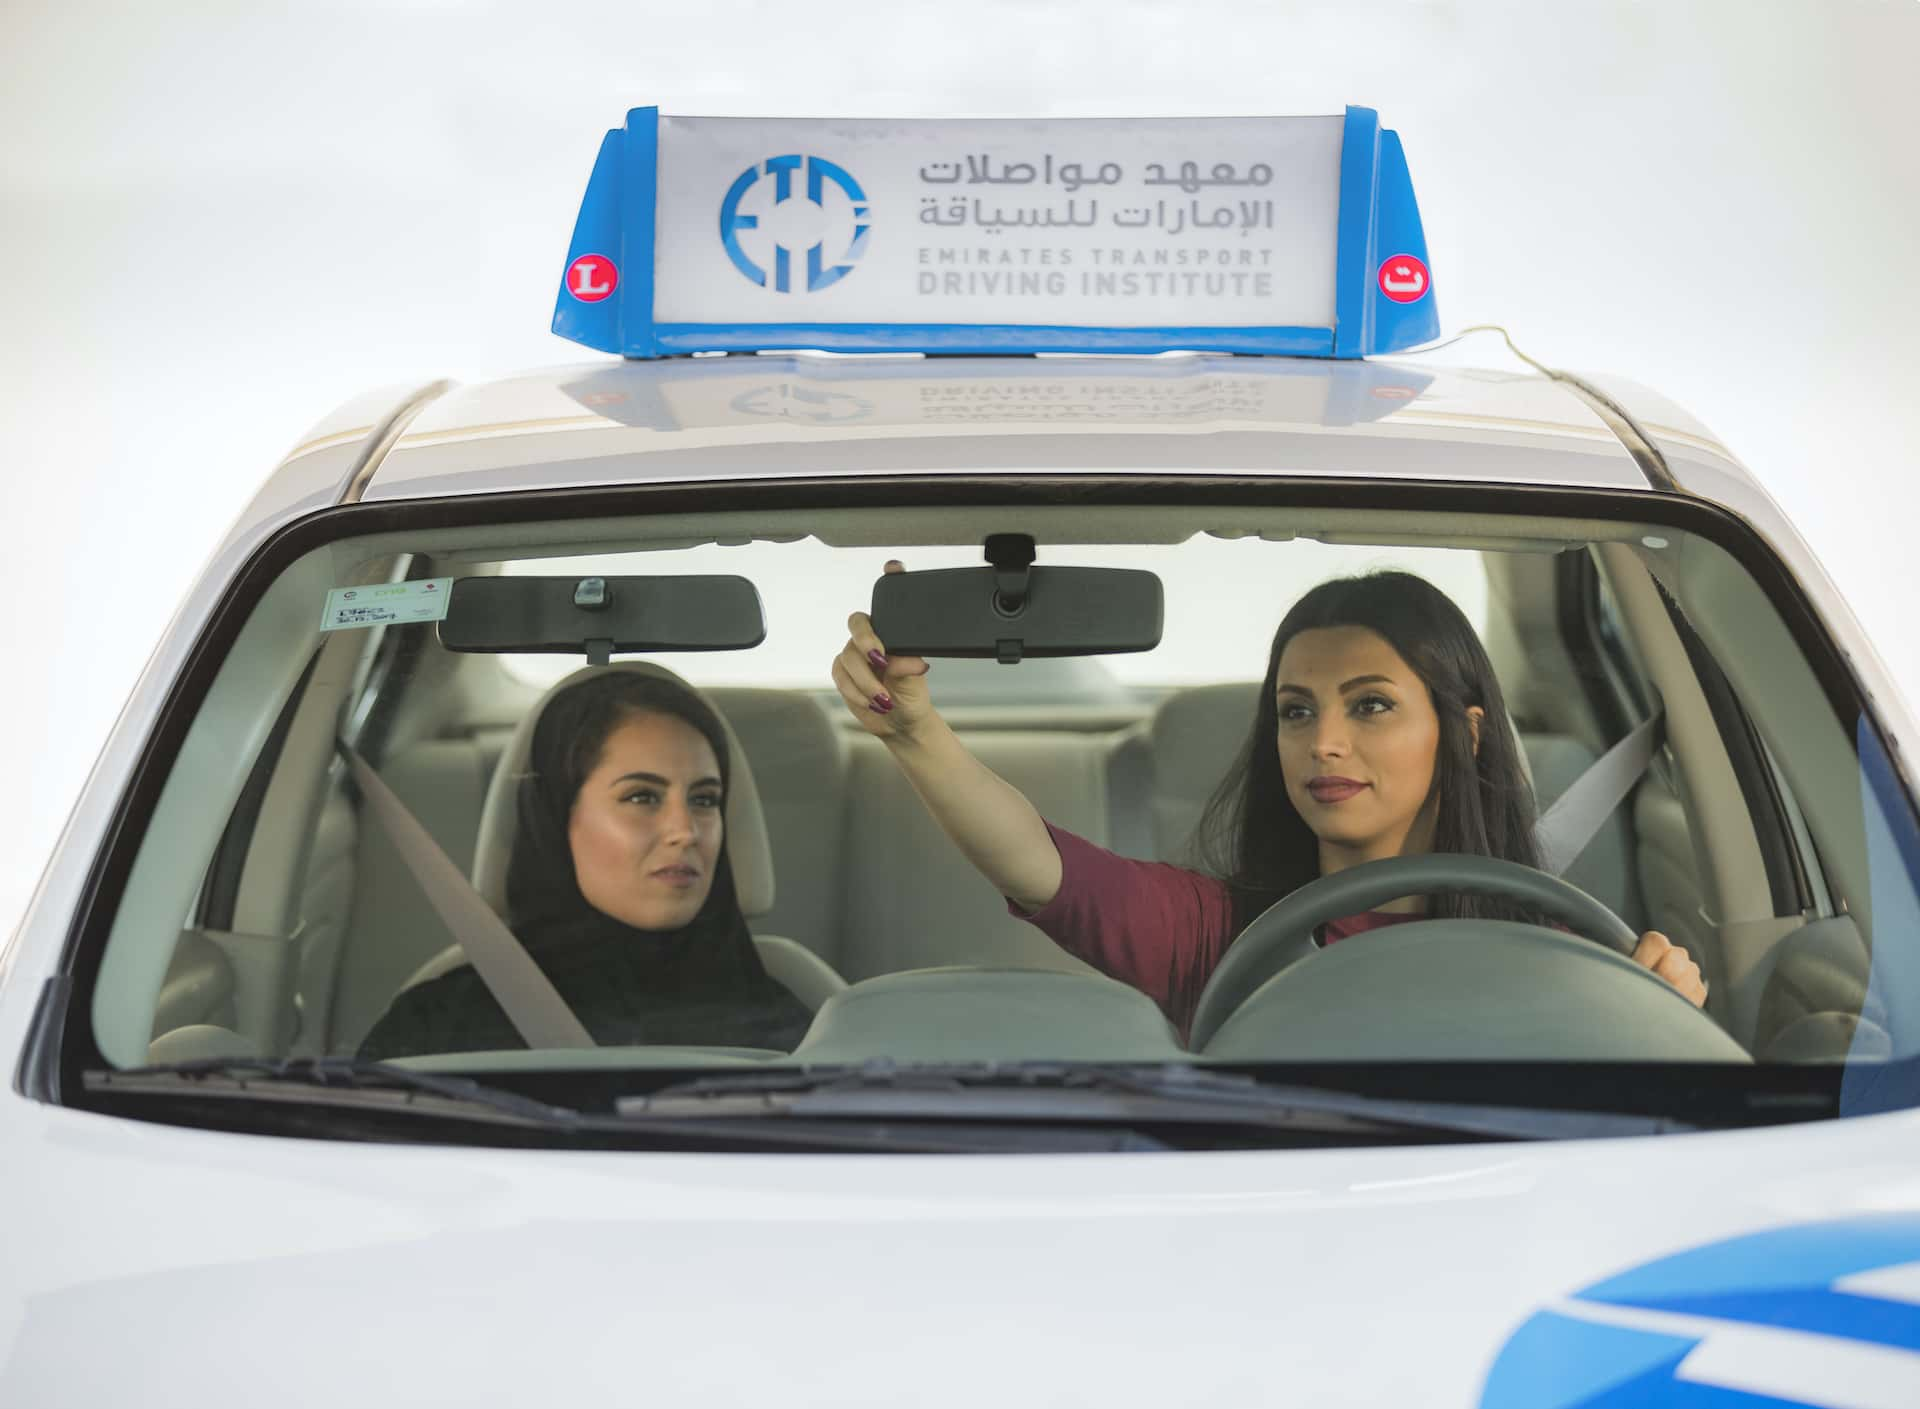 Emirates Transport Driving Institute